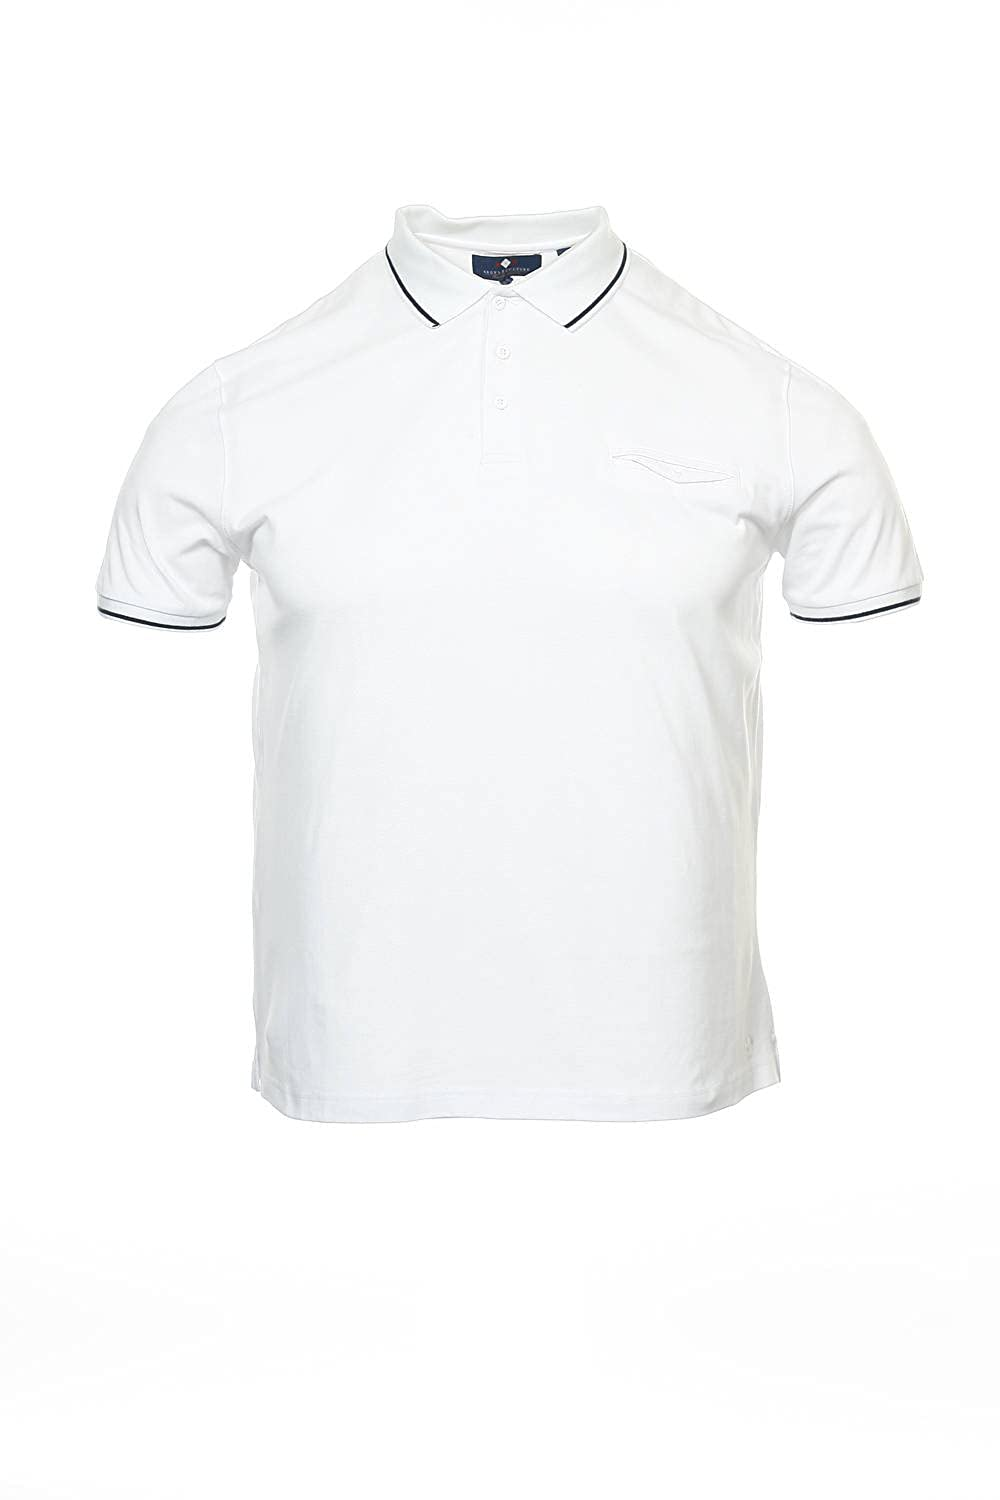 5014c05740 Argyleculture by Russell Simmons White Herringbone Polo Shirt Golf ...